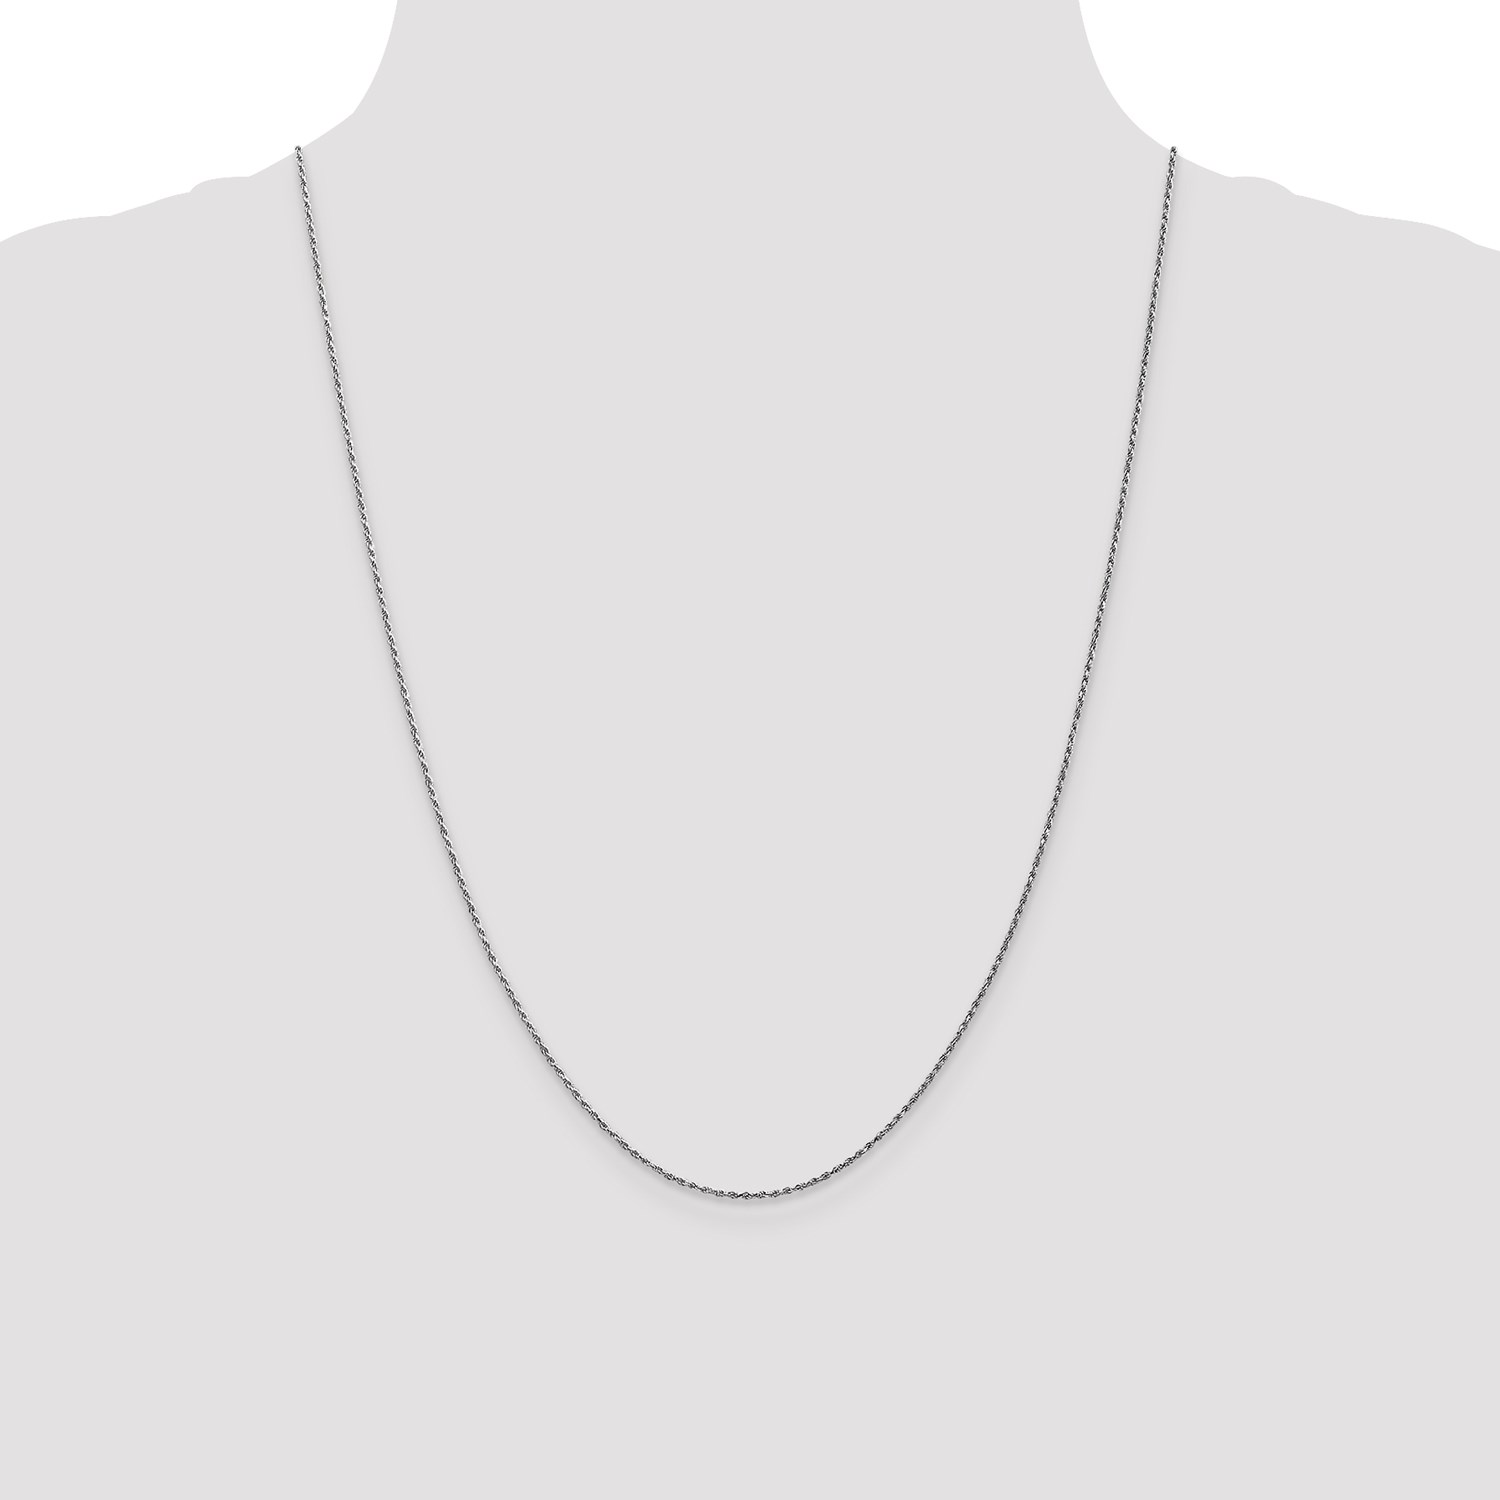 c69bc35311e 10k White Gold 16in 1.2mm Machine Made D C Rope Necklace Chain